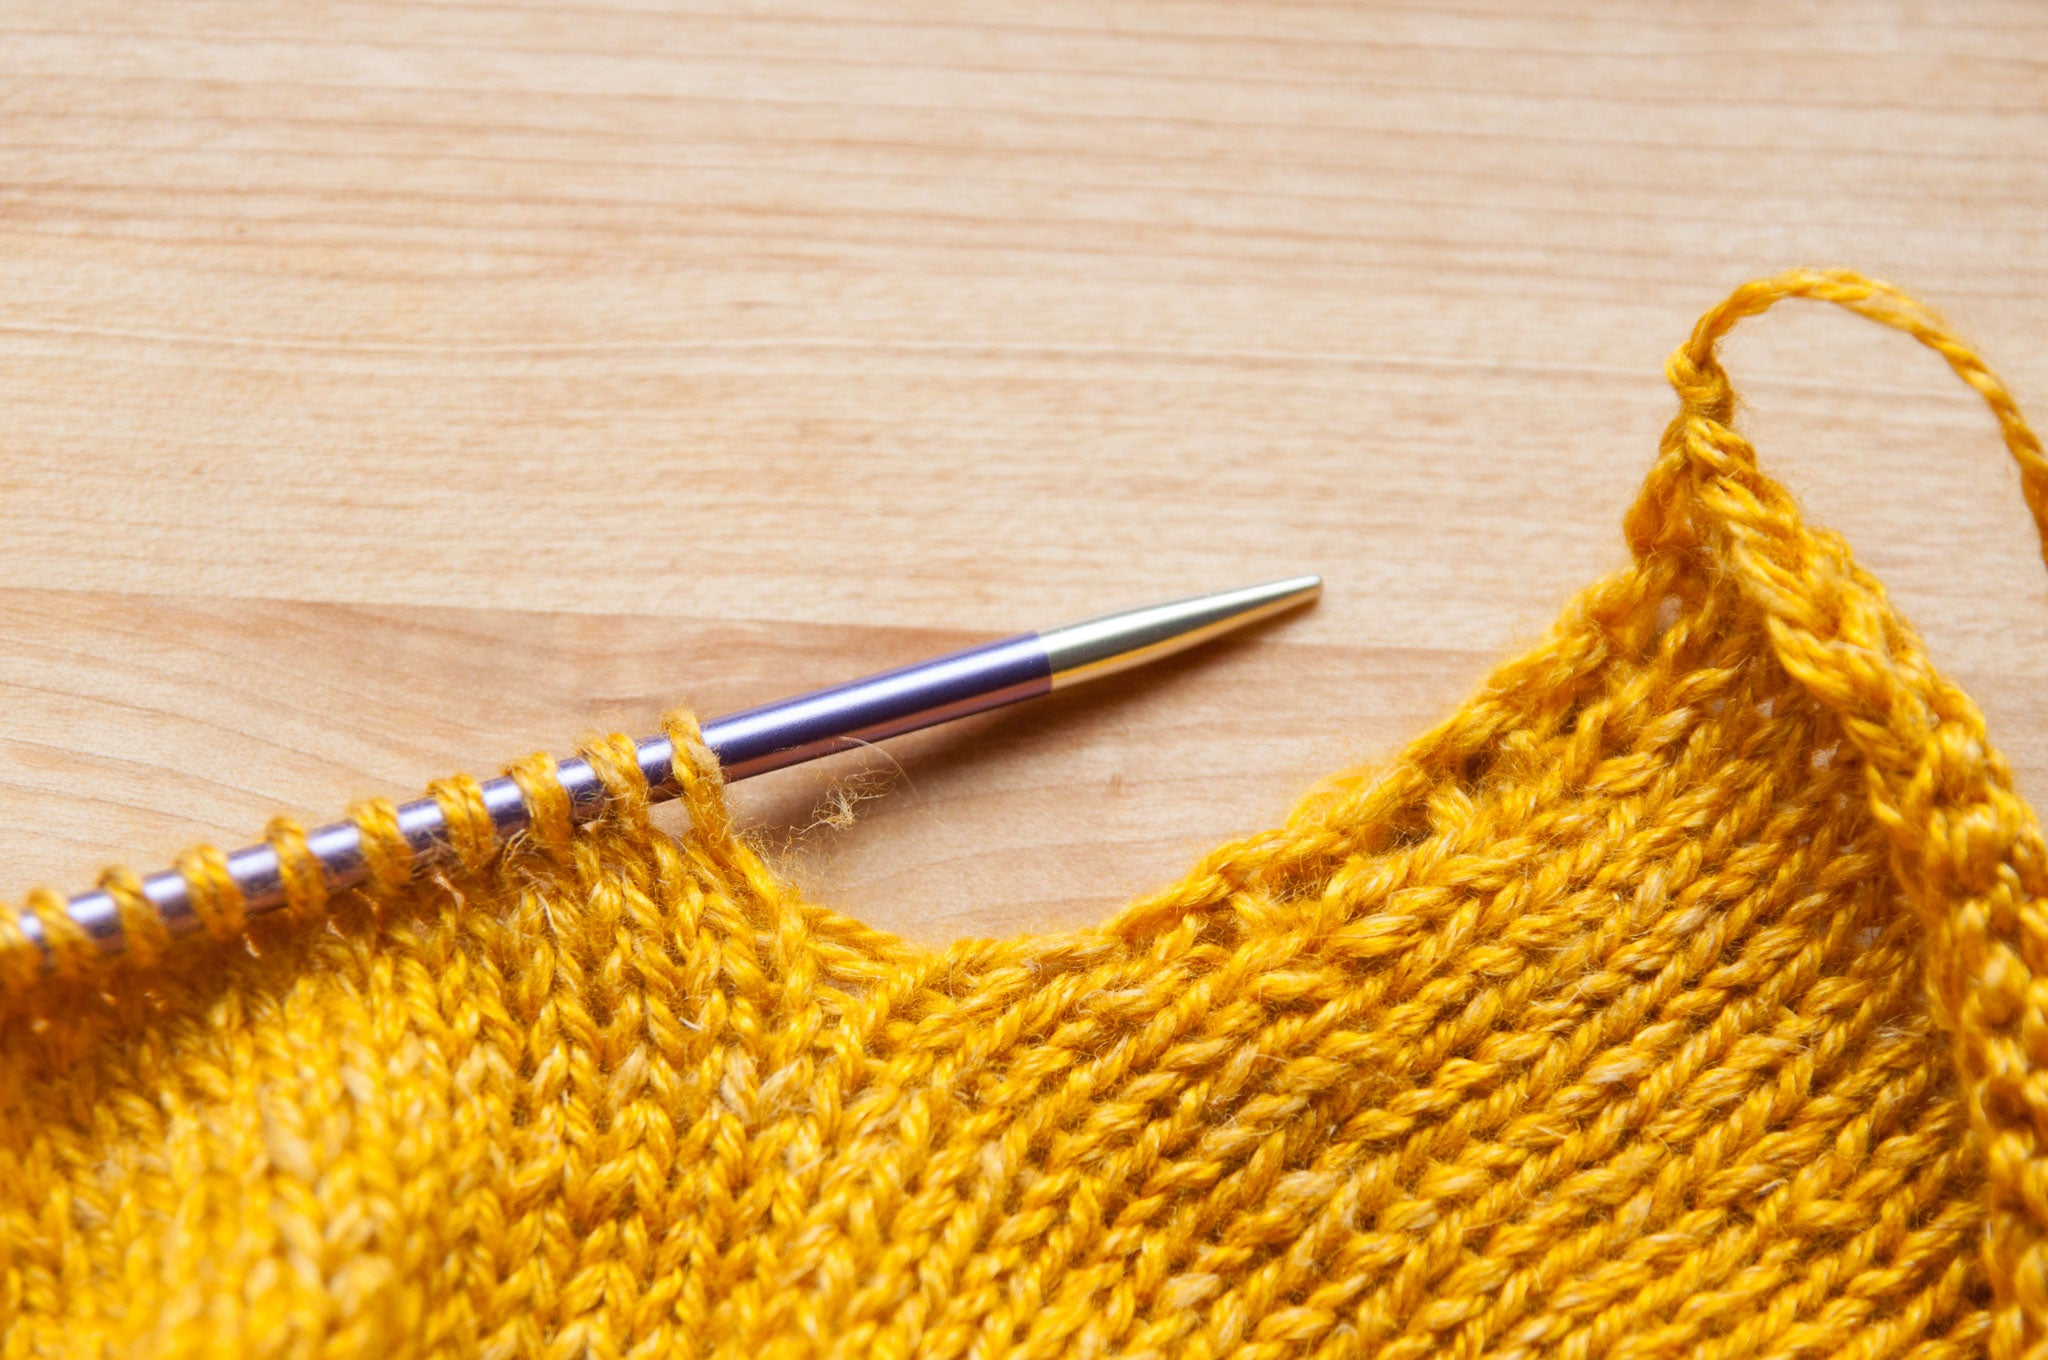 Return the back hem stitches to the needles.